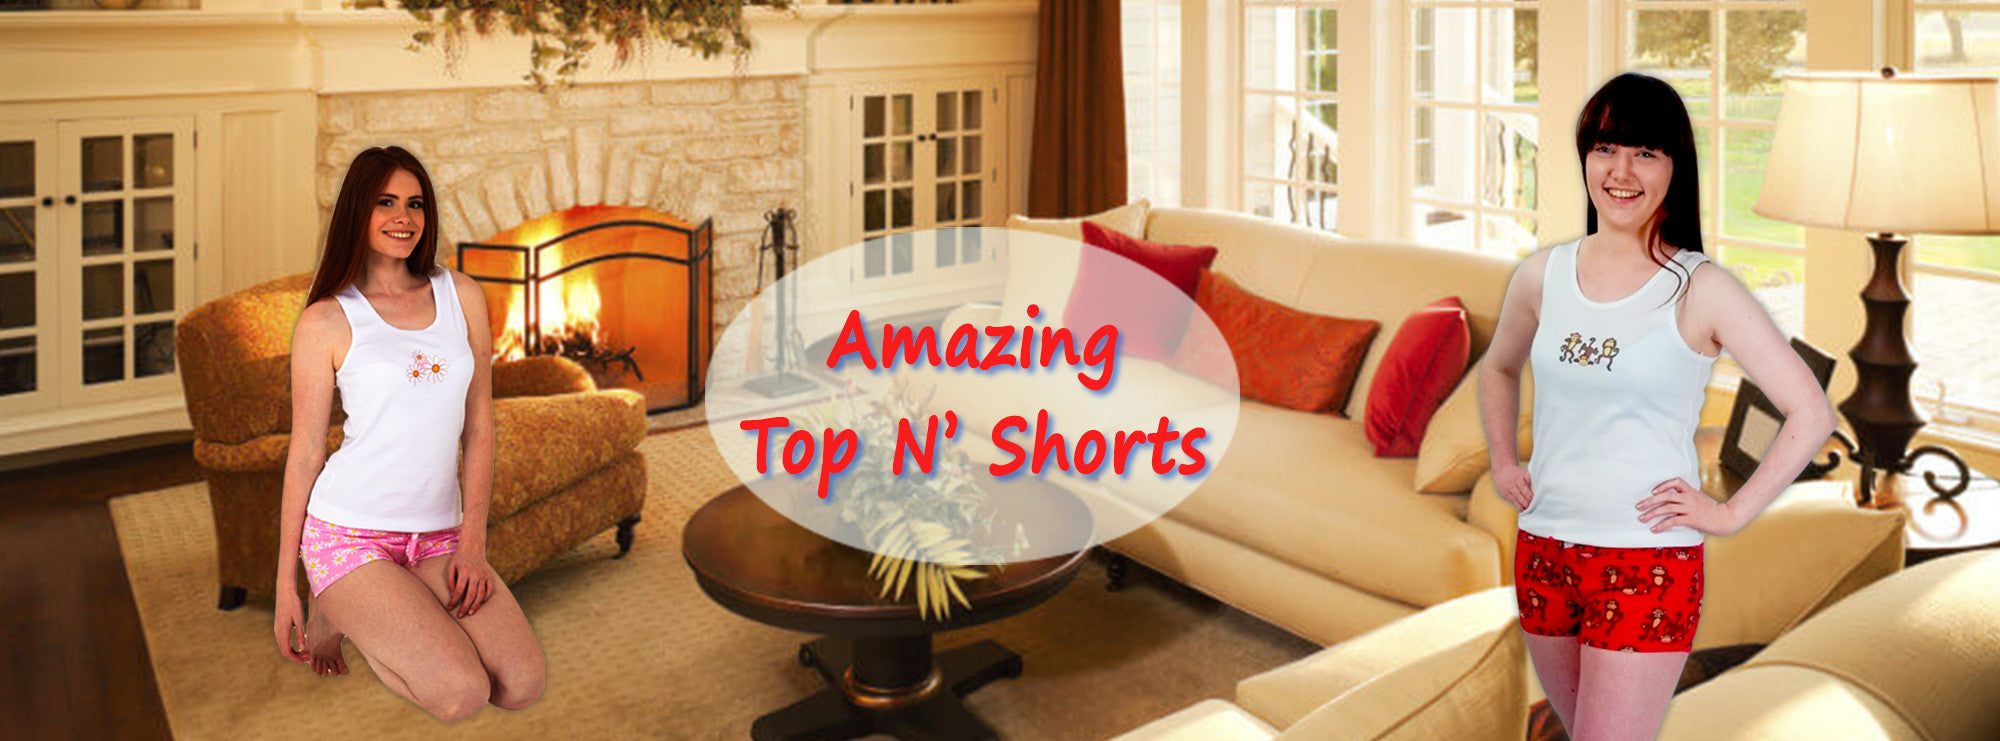 Amazing Top N' Shorts / Brabo Magic Top N' Shorts